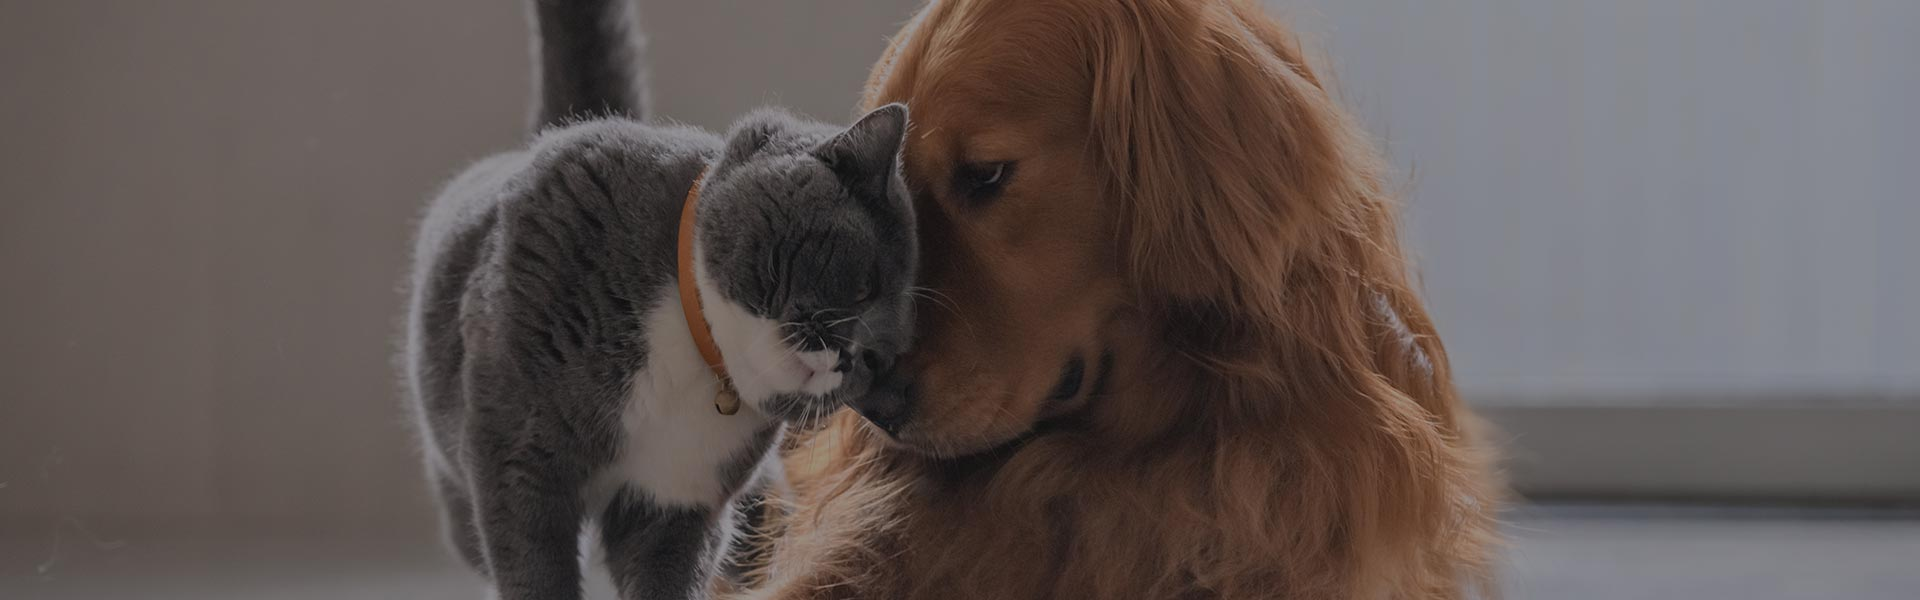 grey and white cat rubbing heads with golden retriever